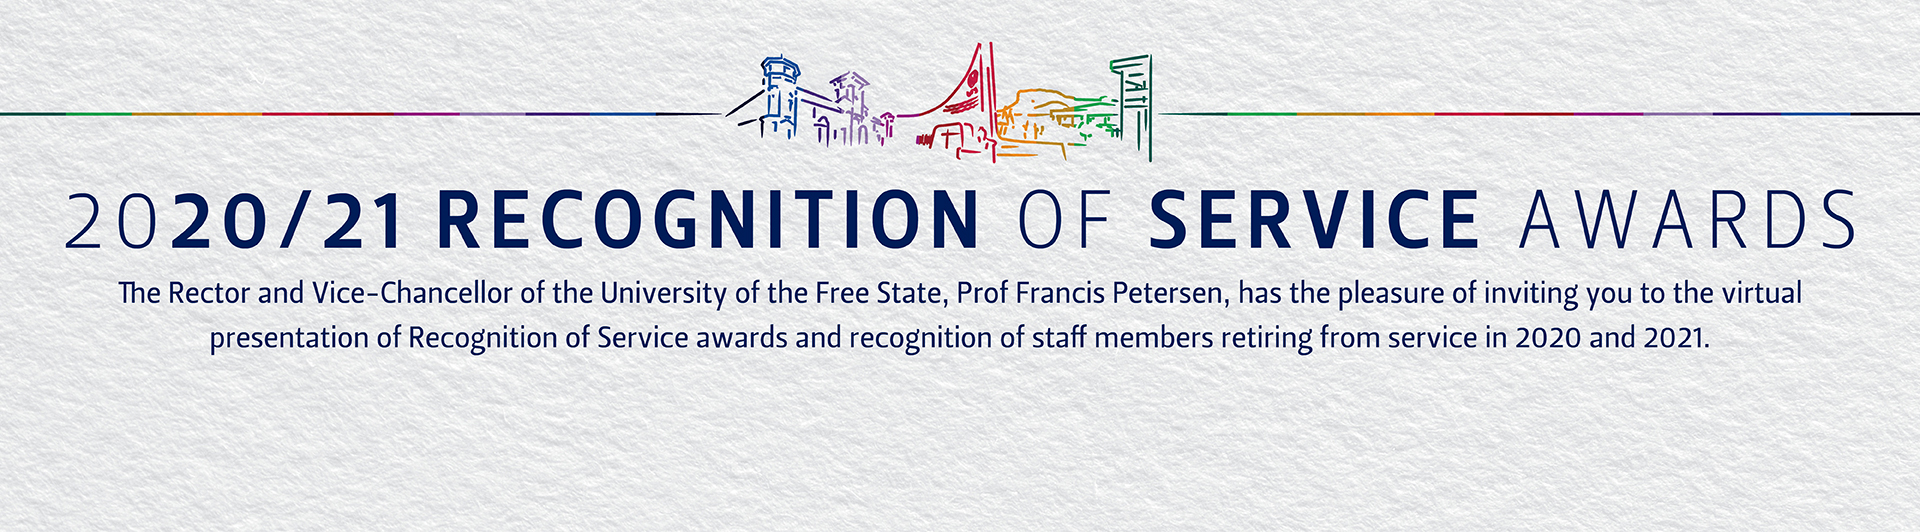 Recognition of Service Awards